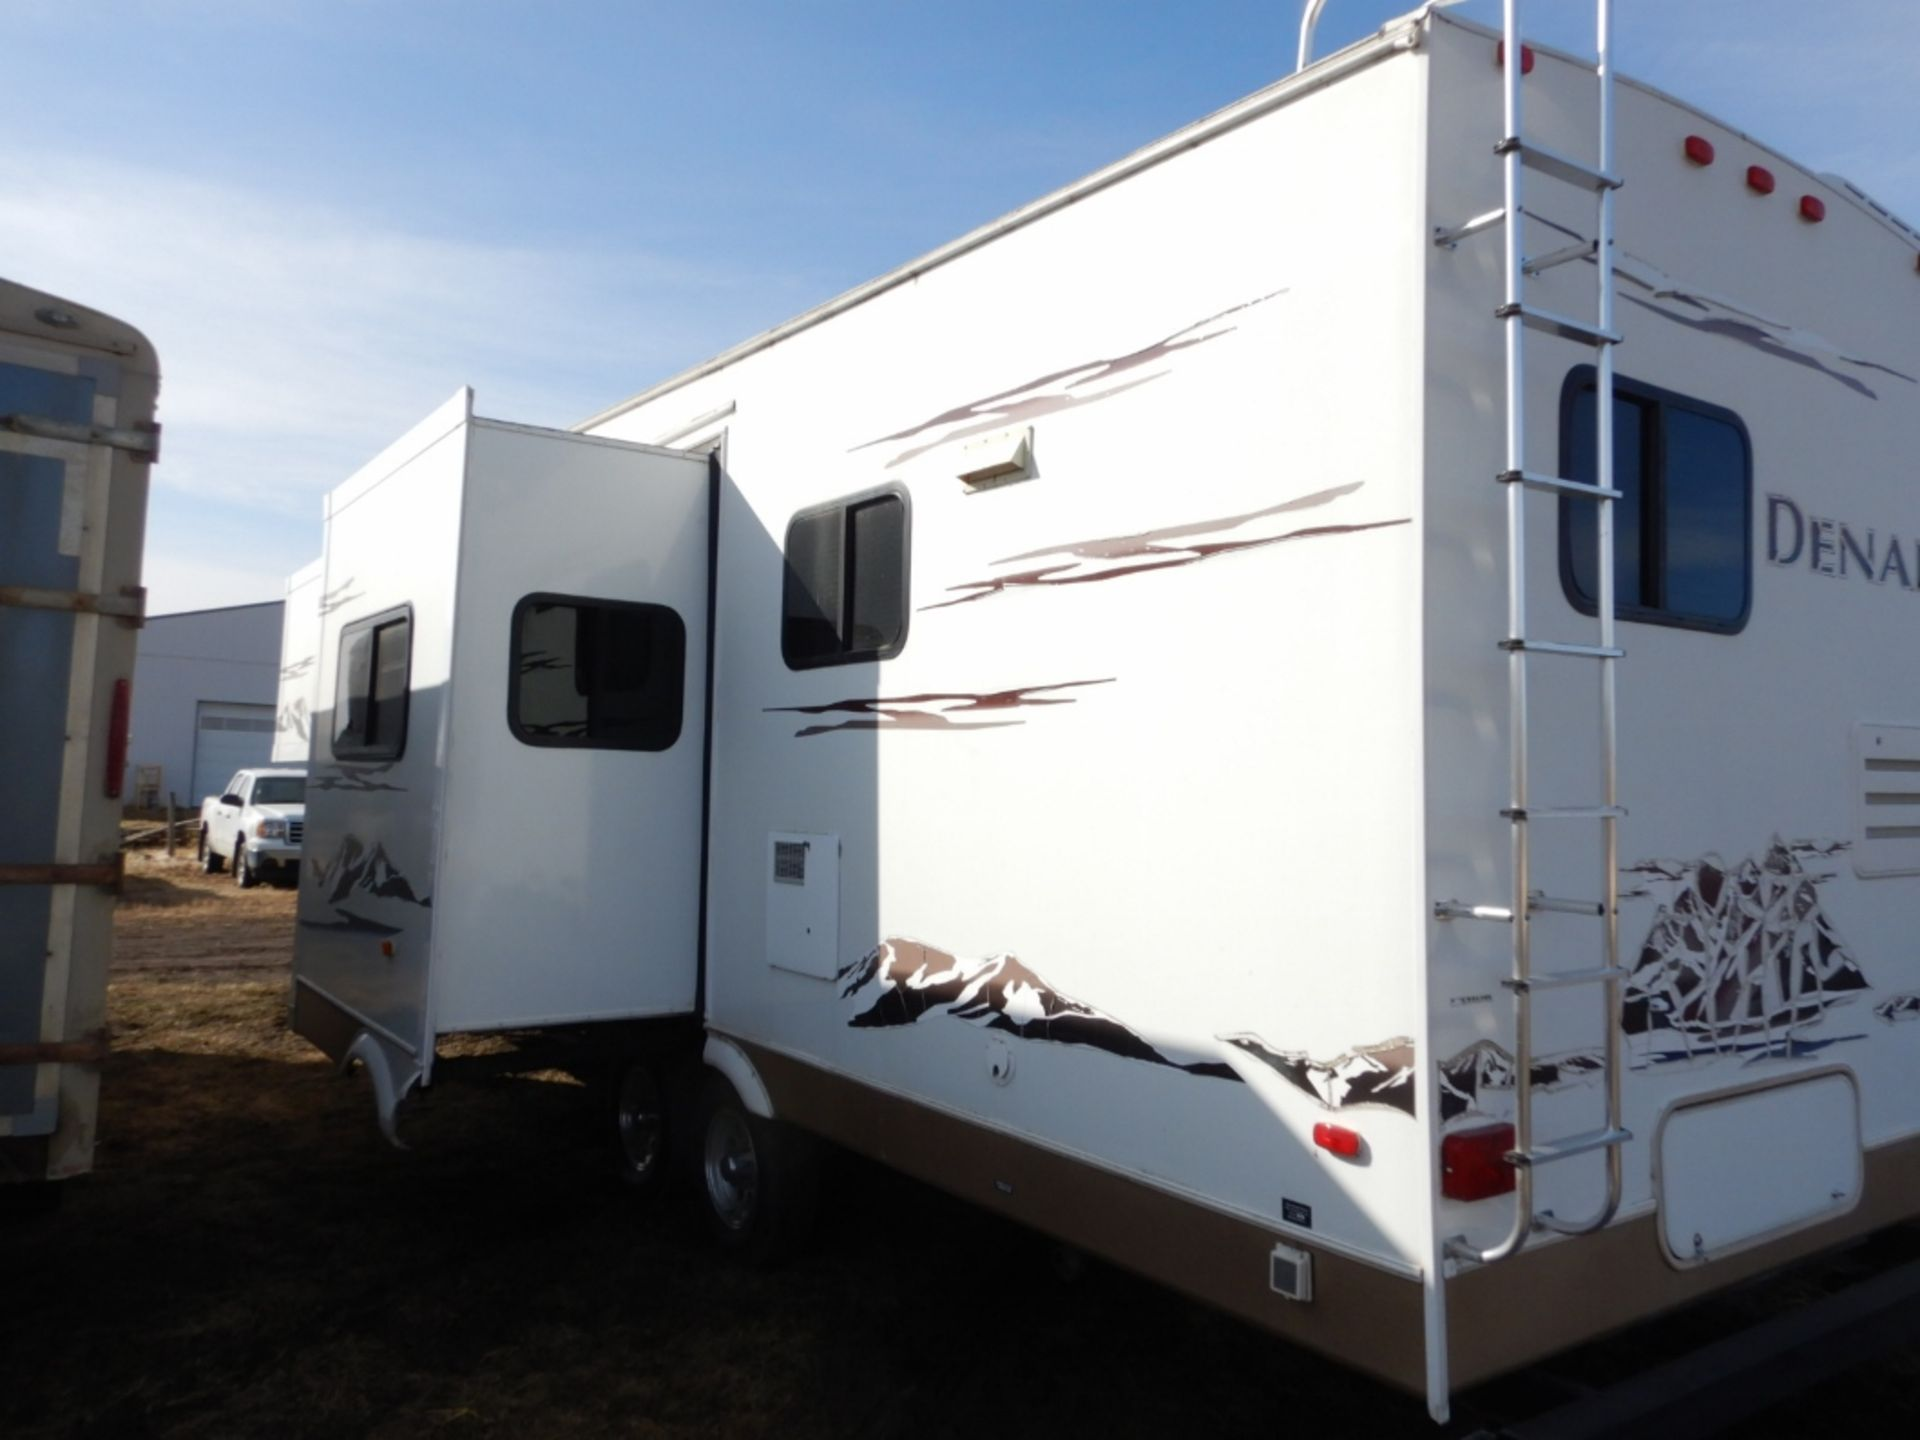 2006 DUTCHMEN DENALI 31RGBS/M5 5W HOLIDAY RV TRAILER S/N 47CFD1S226P616039 W/3-SLIDE-OUTS, AWNING, - Image 5 of 16